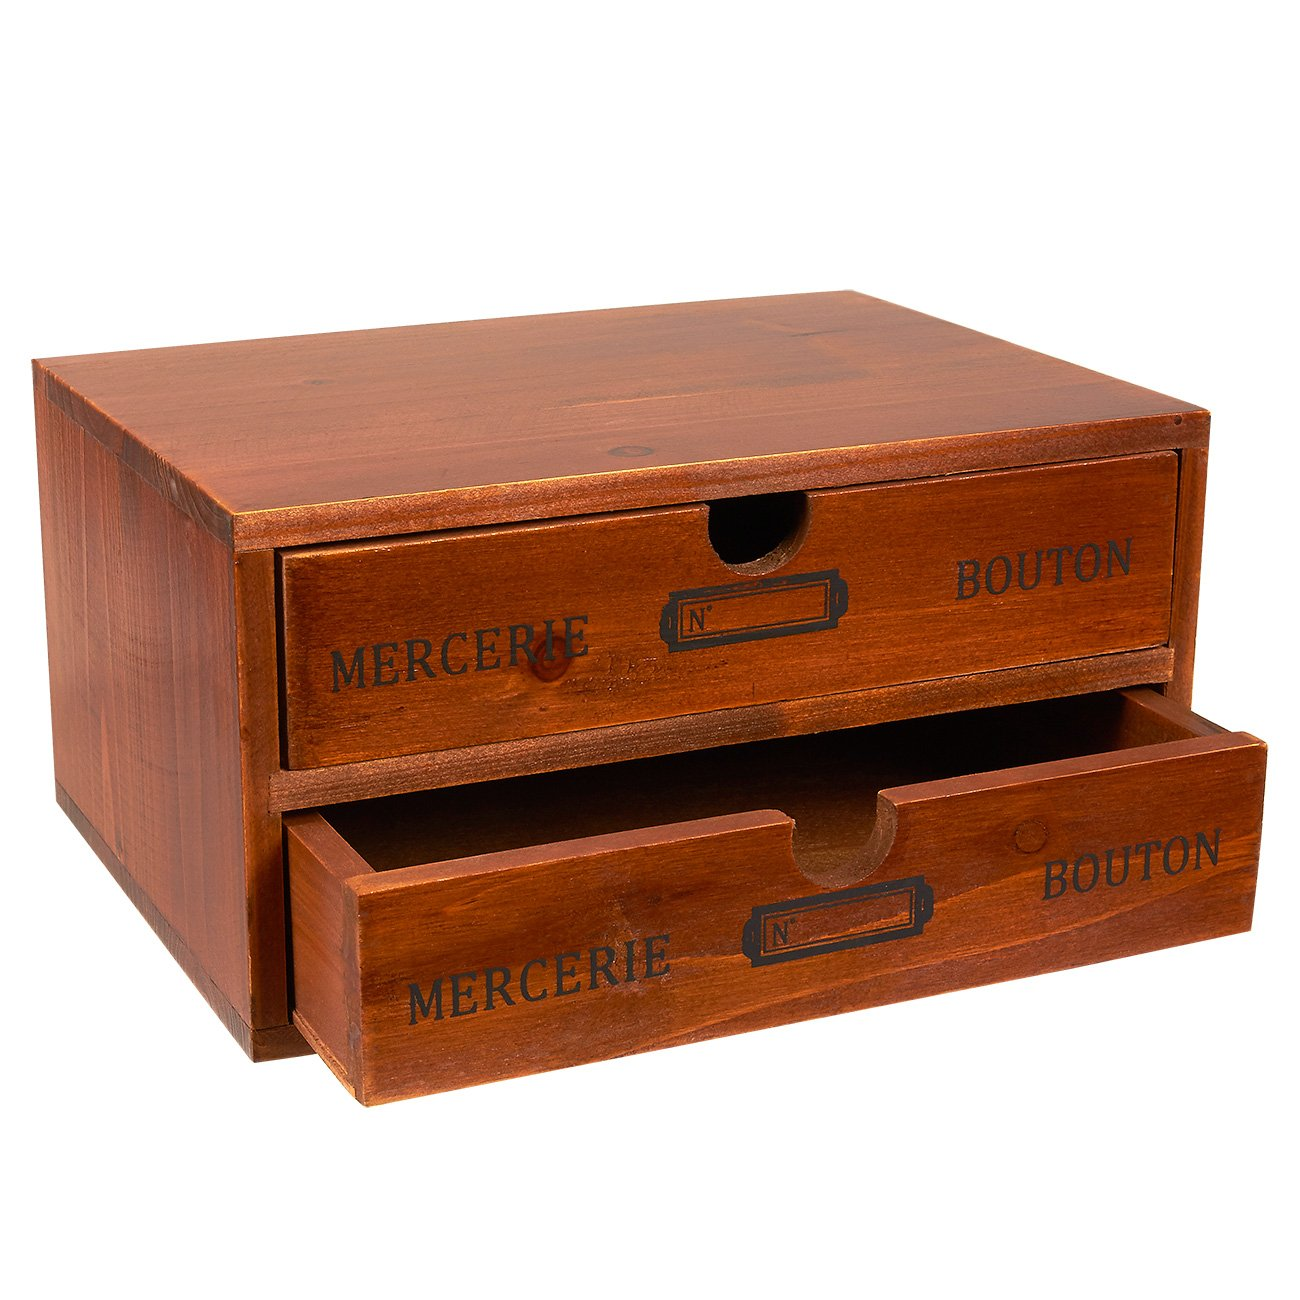 Juvale Organizer Holder Storage Drawers - Decorative Wooden Drawers with Chic French Design - 9.75 x 7 x 5 inches